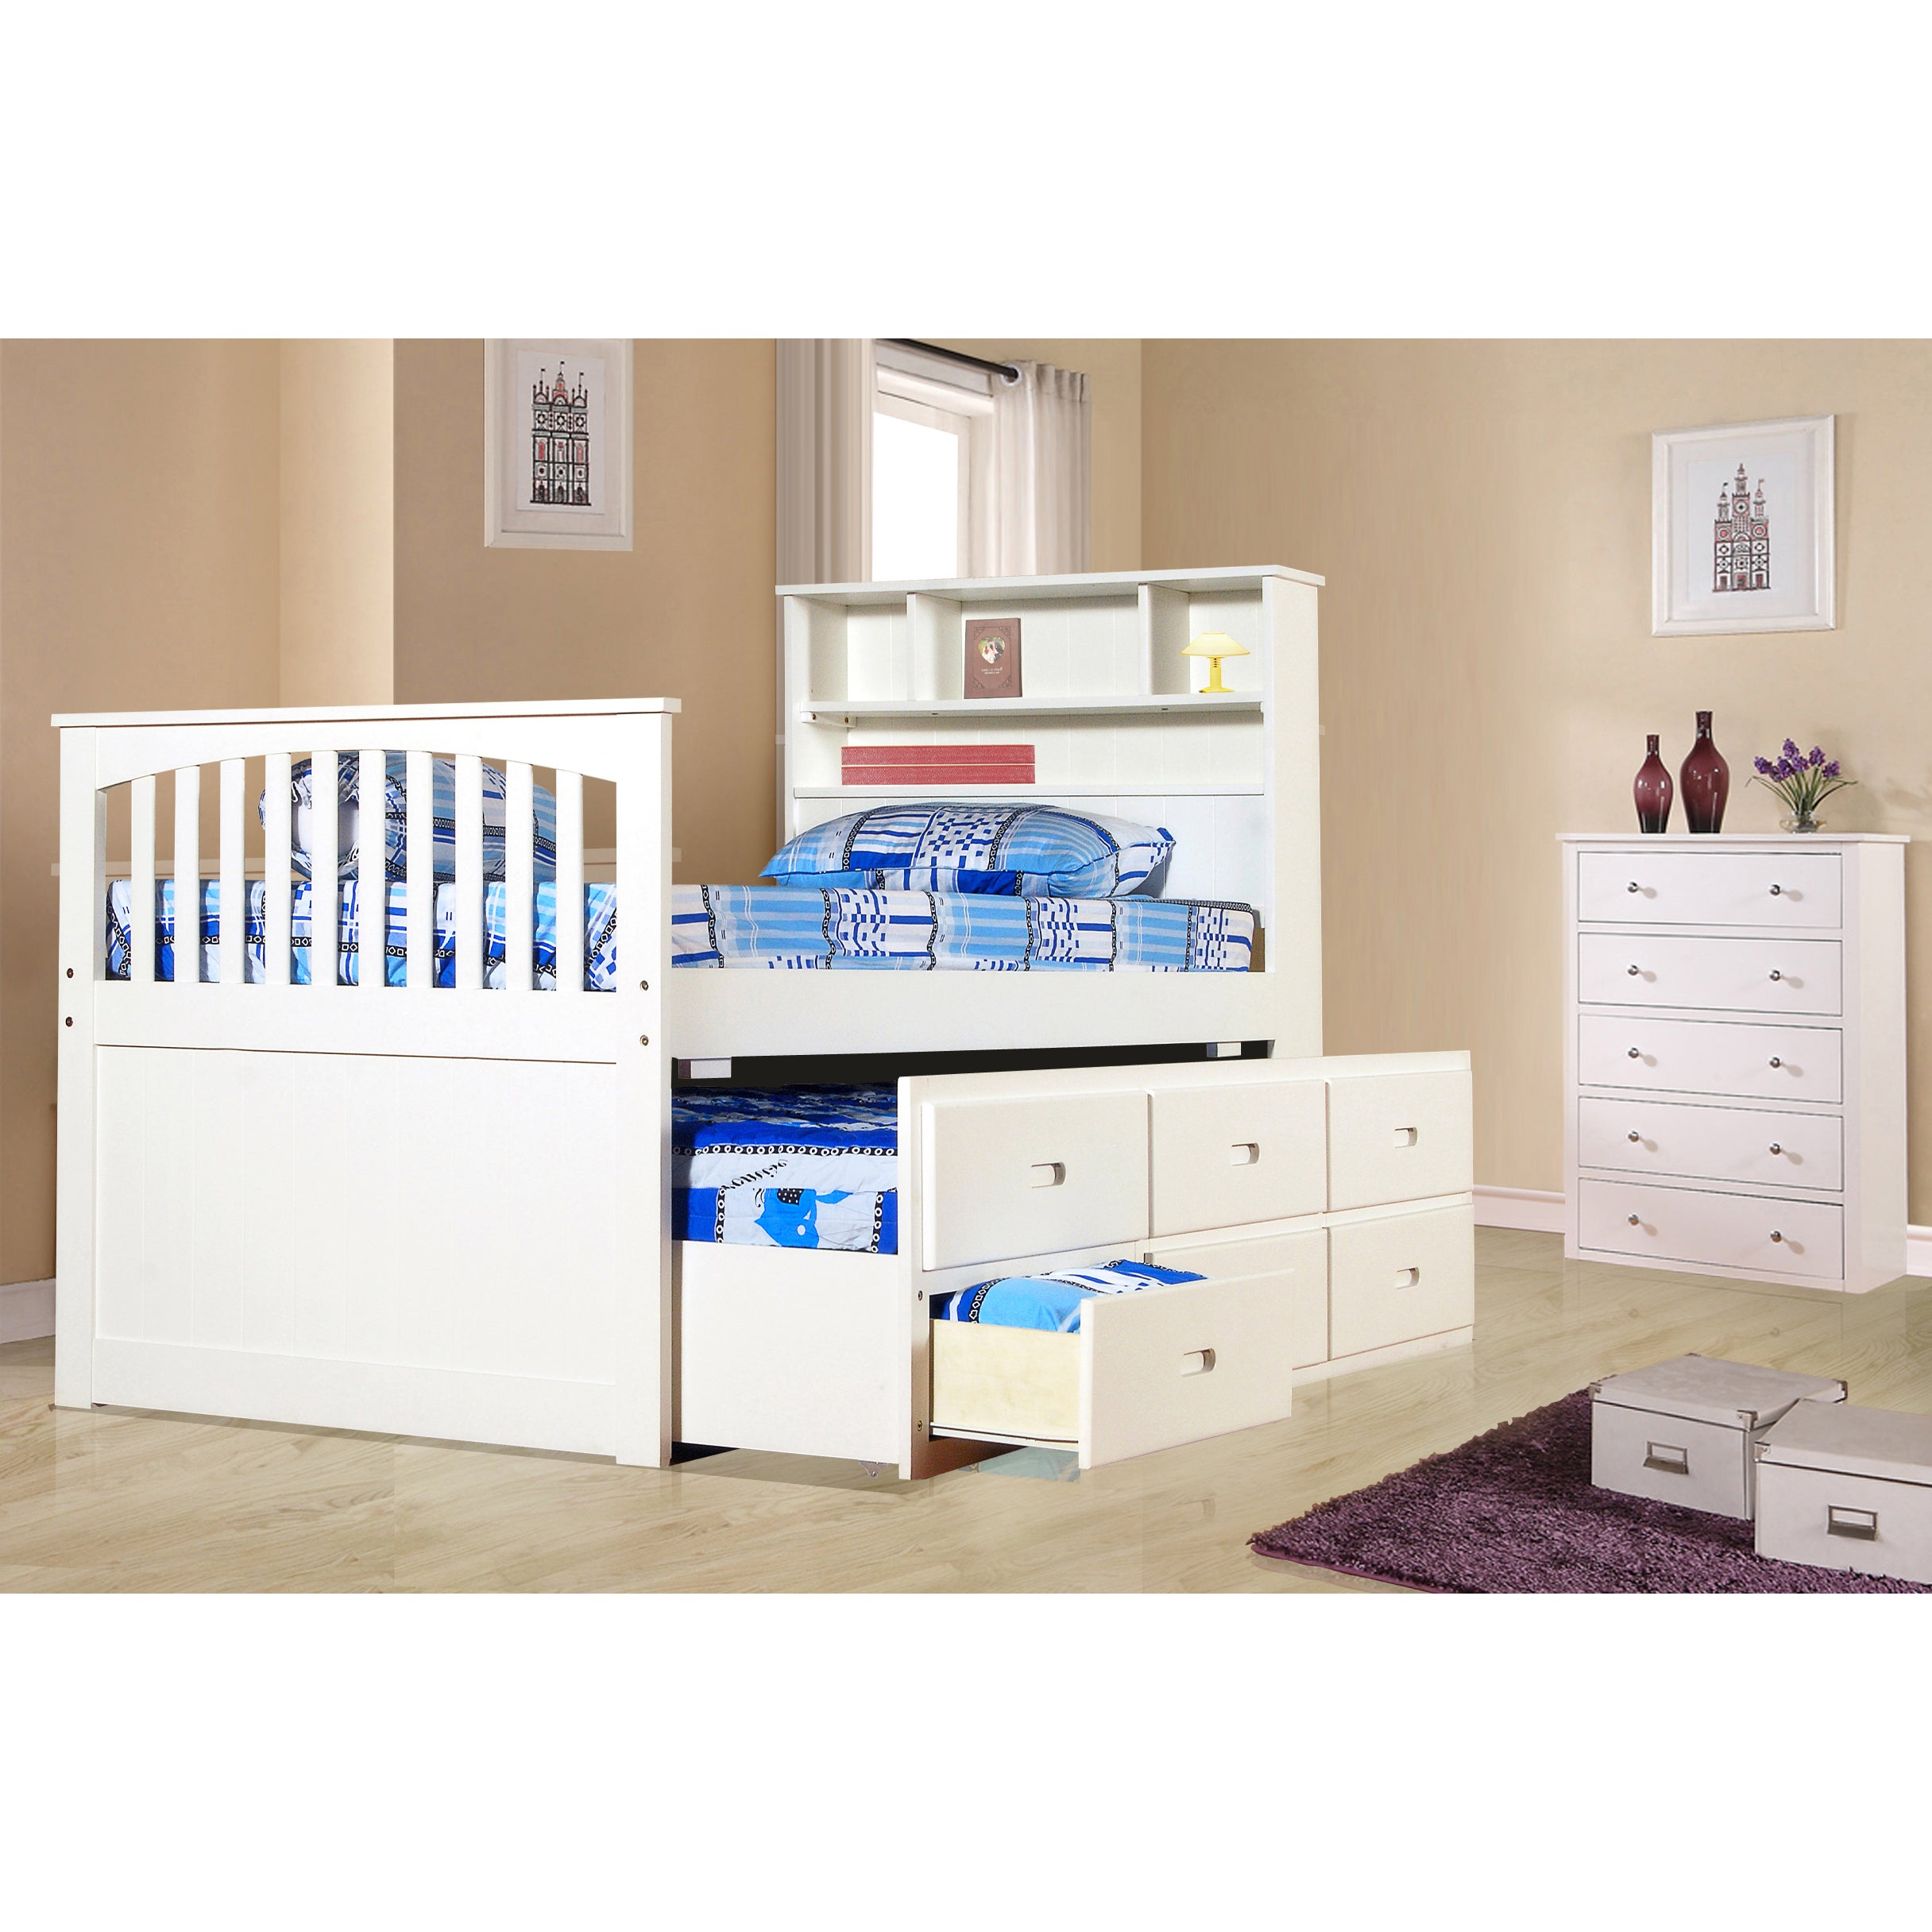 Ava Twin Captain Trundle Bed with Bookshelf and Drawers (...